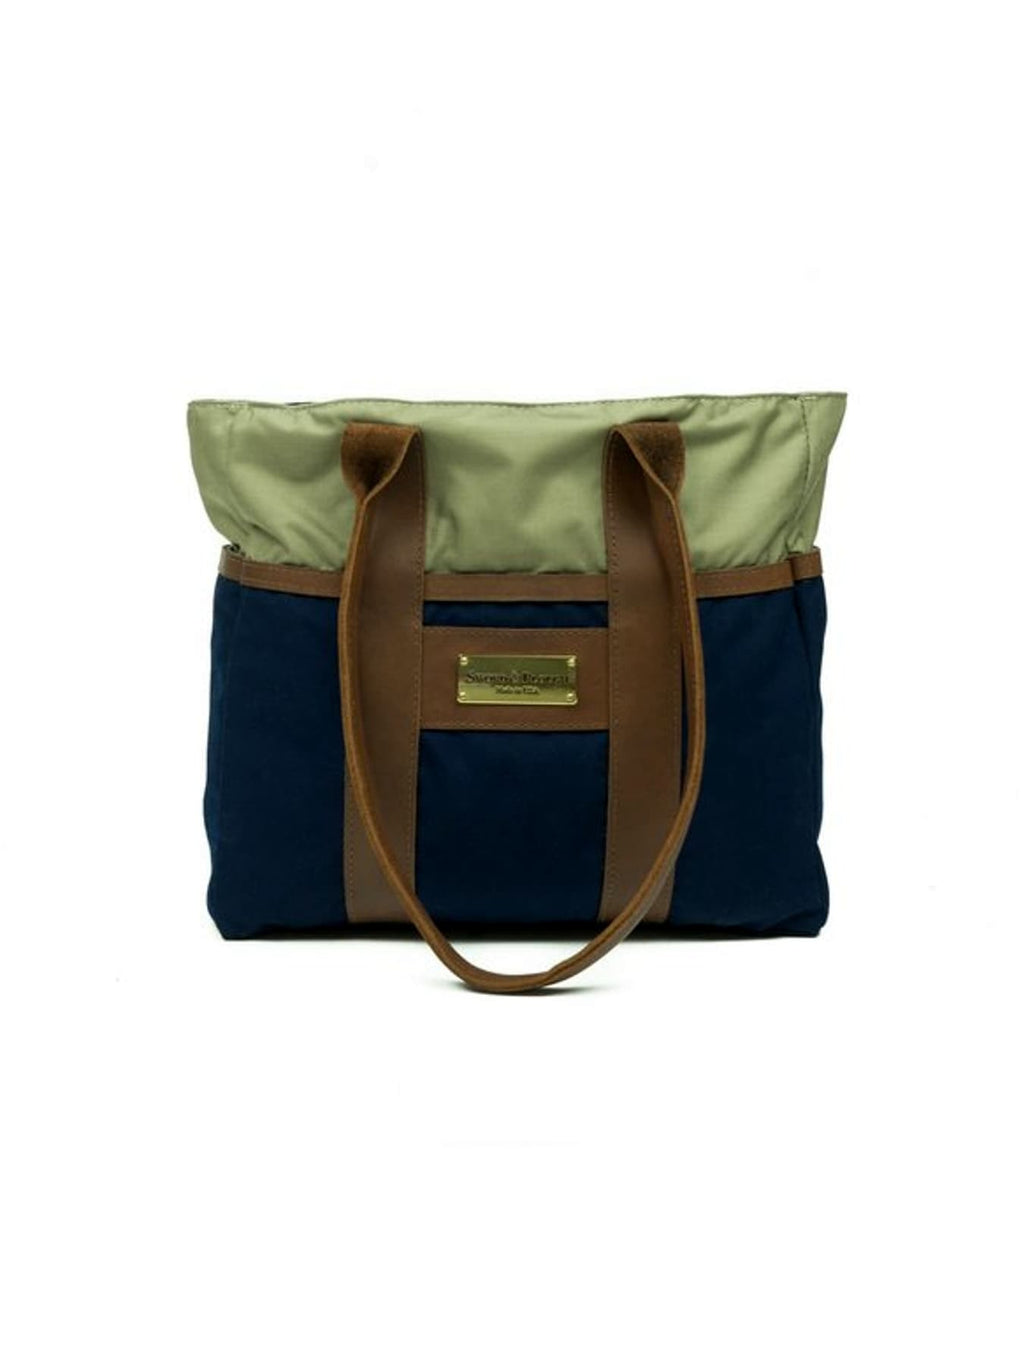 Blue Water Resistant Zip Top Tote Bag